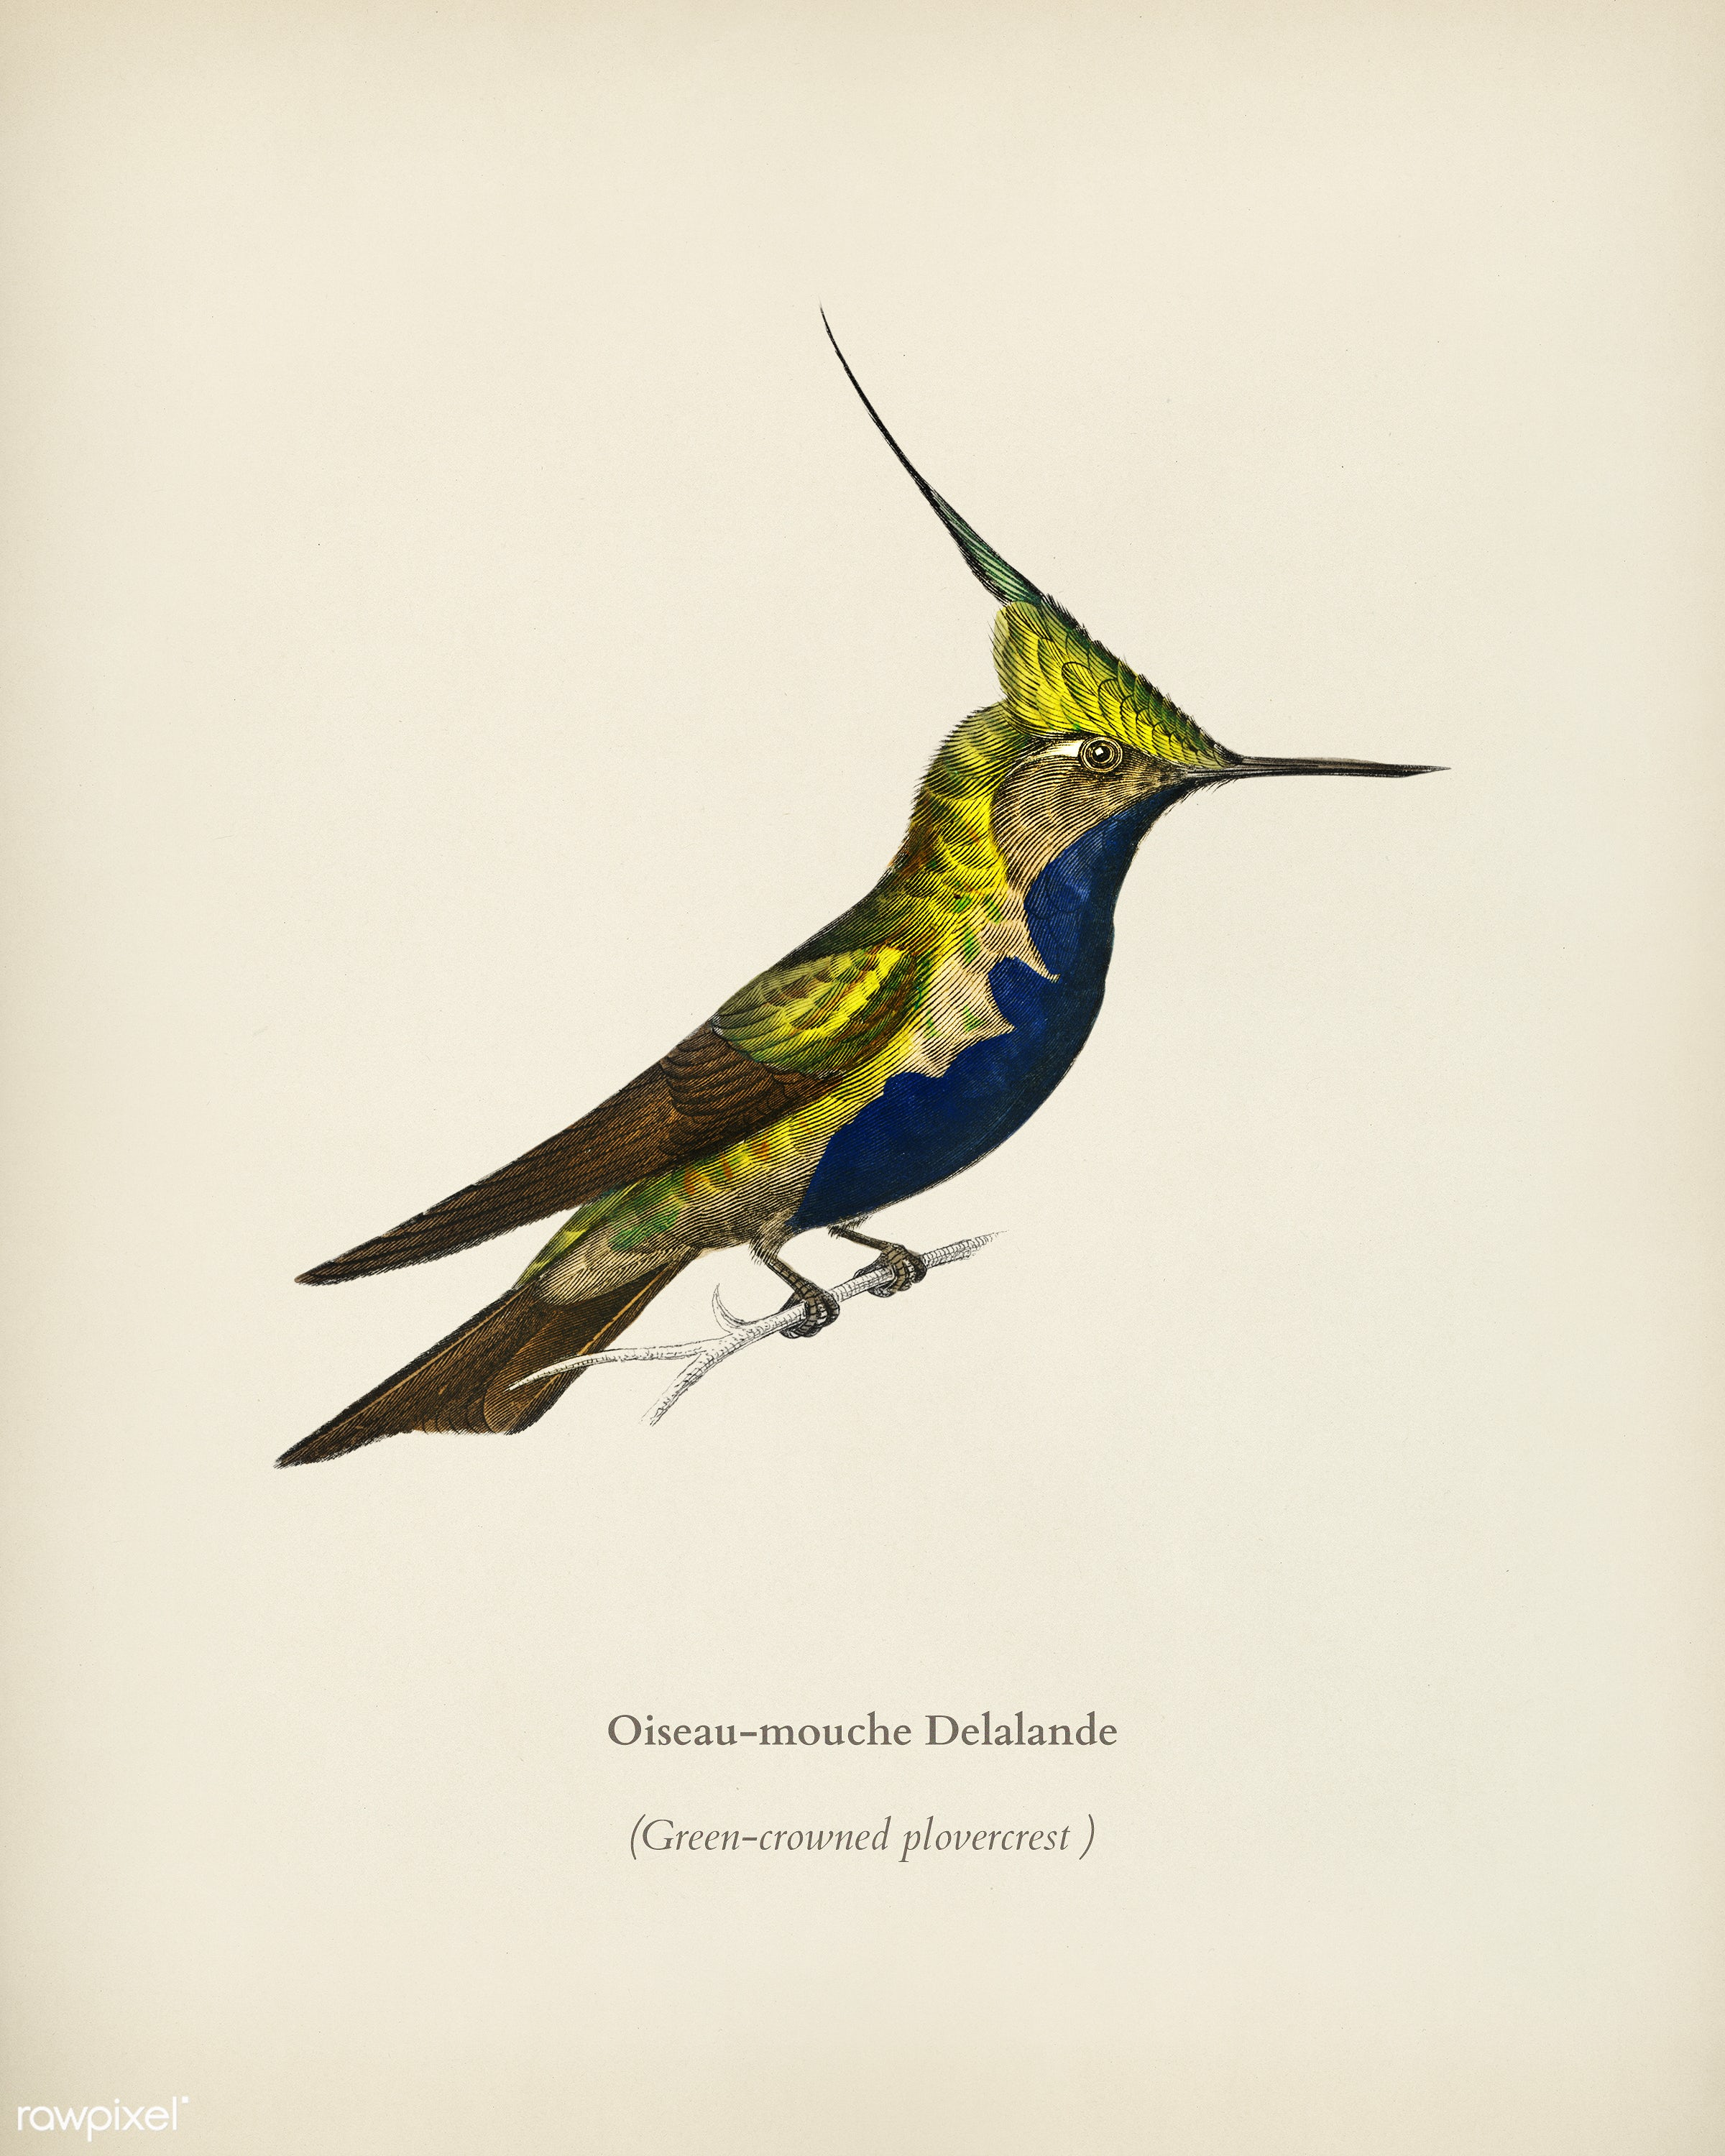 Green-crowned plovercrest (Oiseau-mouche Delalande) illustrated by Charles Dessalines D' Orbigny (1806-1876). Digitally...